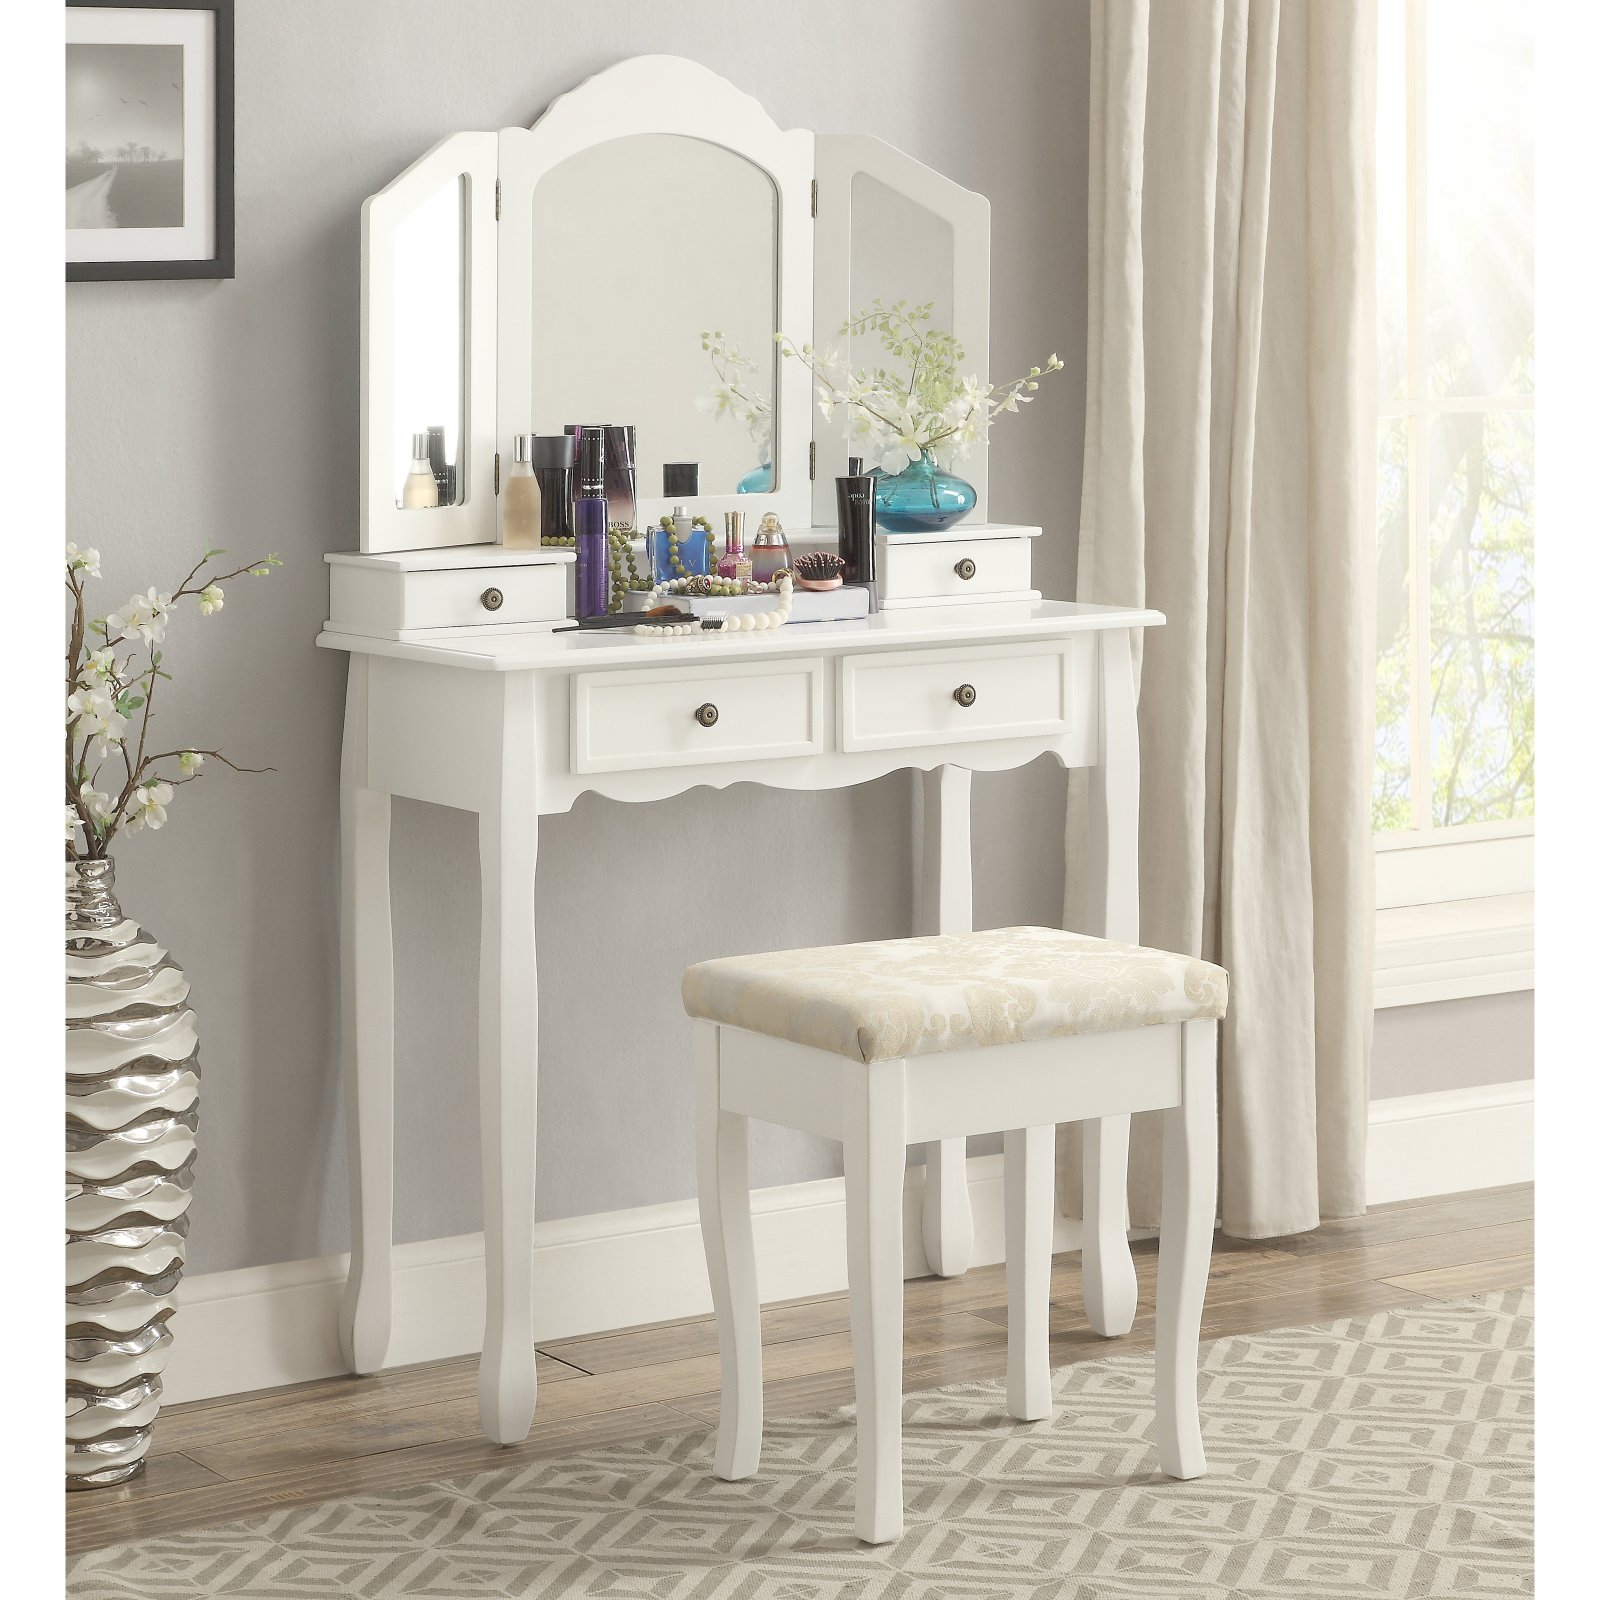 Many Effective Uses of Make up Table